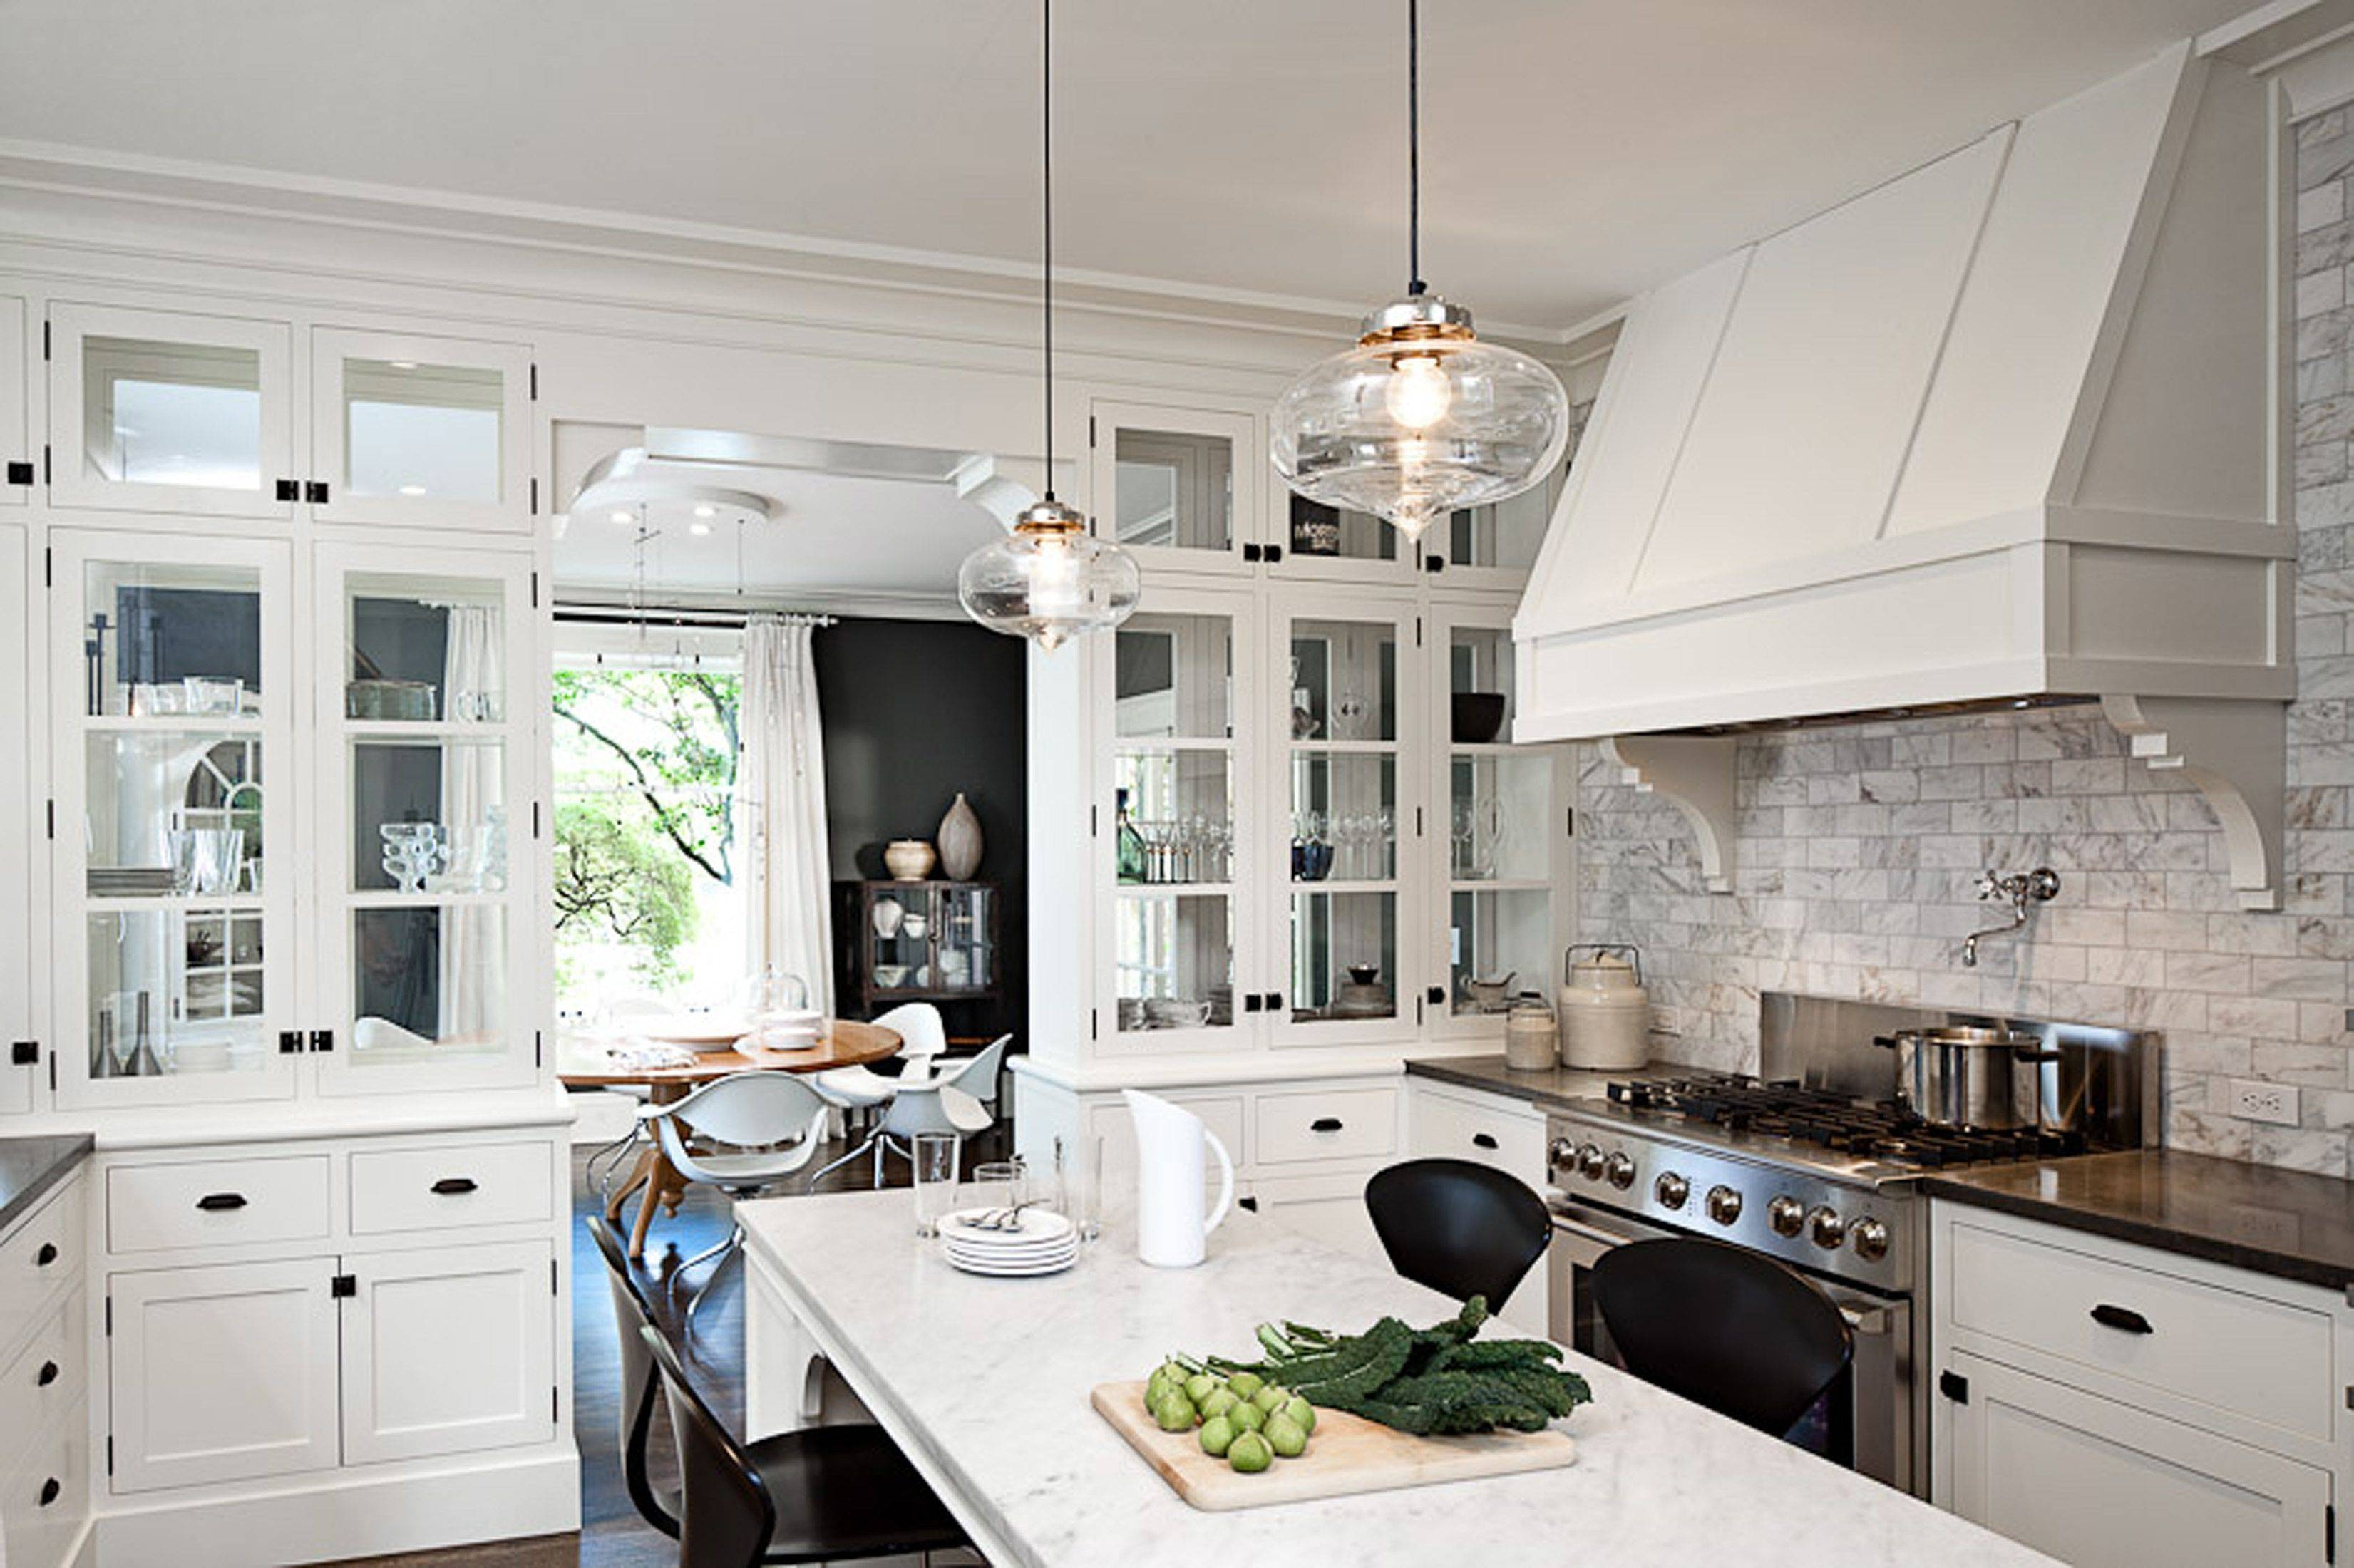 Kitchen Style: White Marble Countertop White Country Kitchen Table in French Glass Pendant Lights (Image 11 of 15)